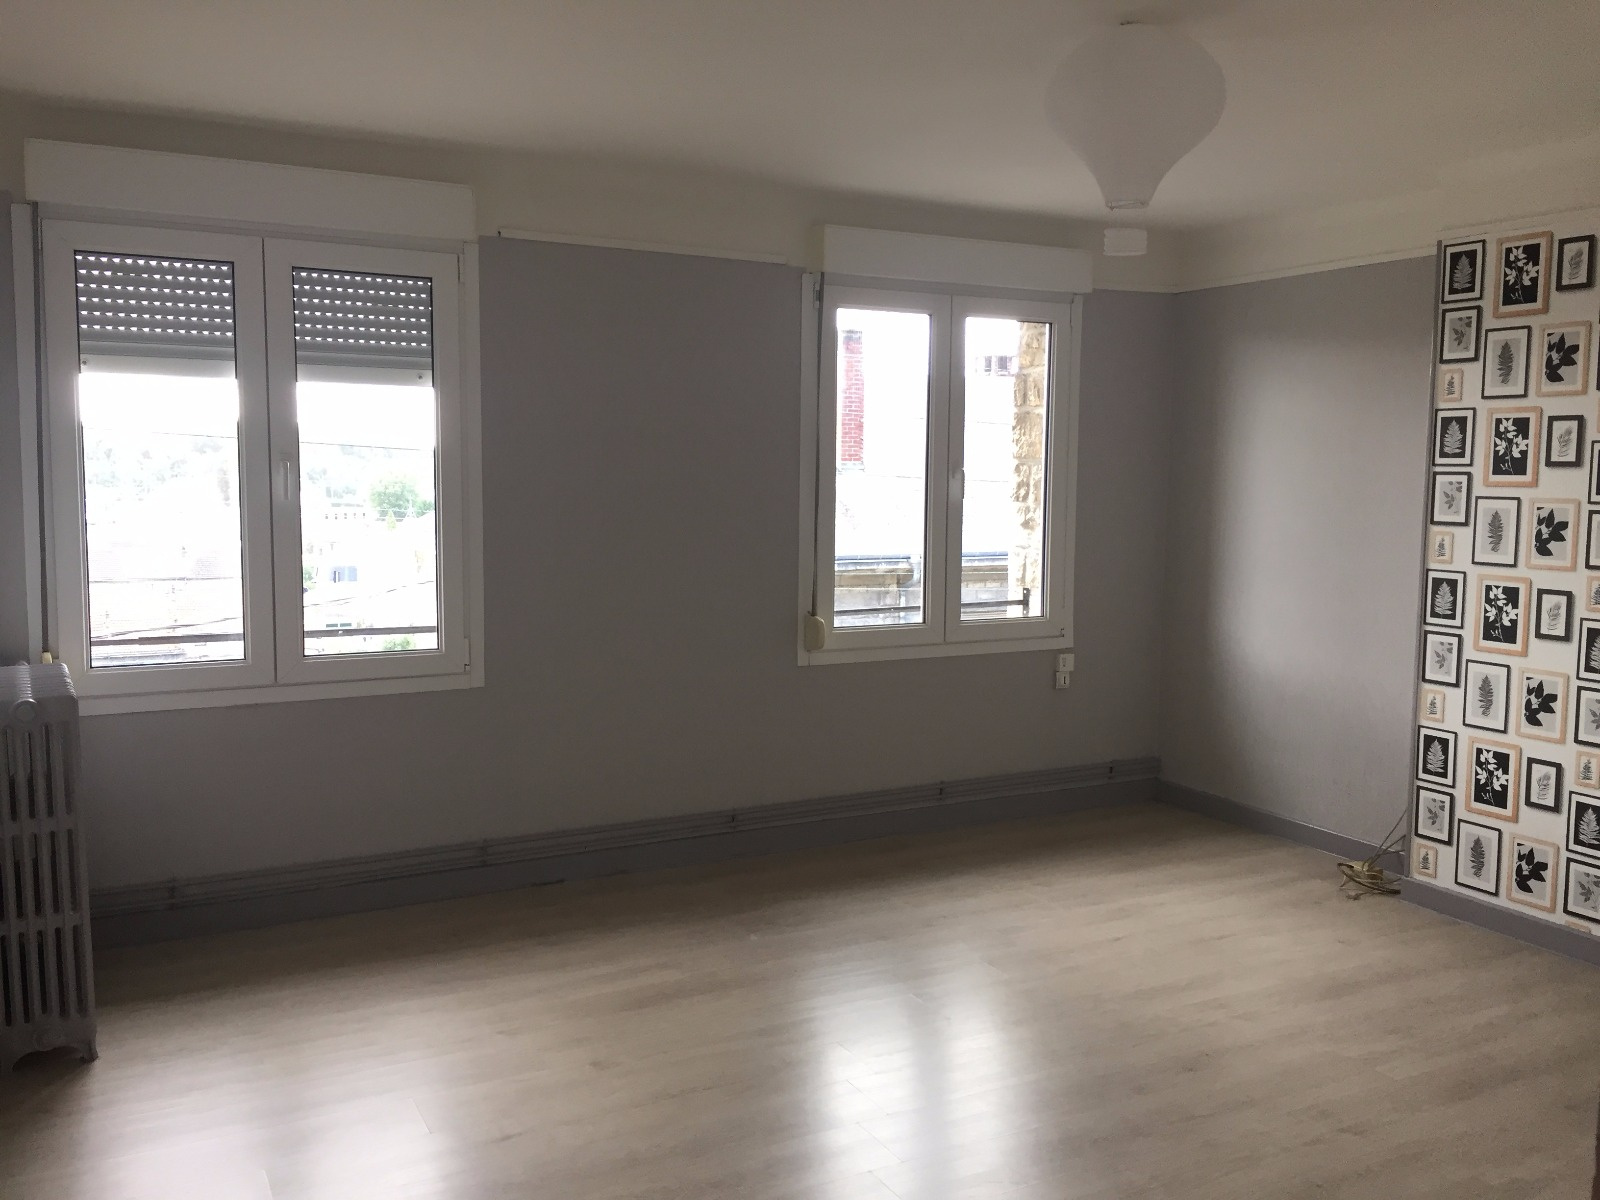 Annonce location appartement rethel 08300 80 m 630 for 08300 rethel